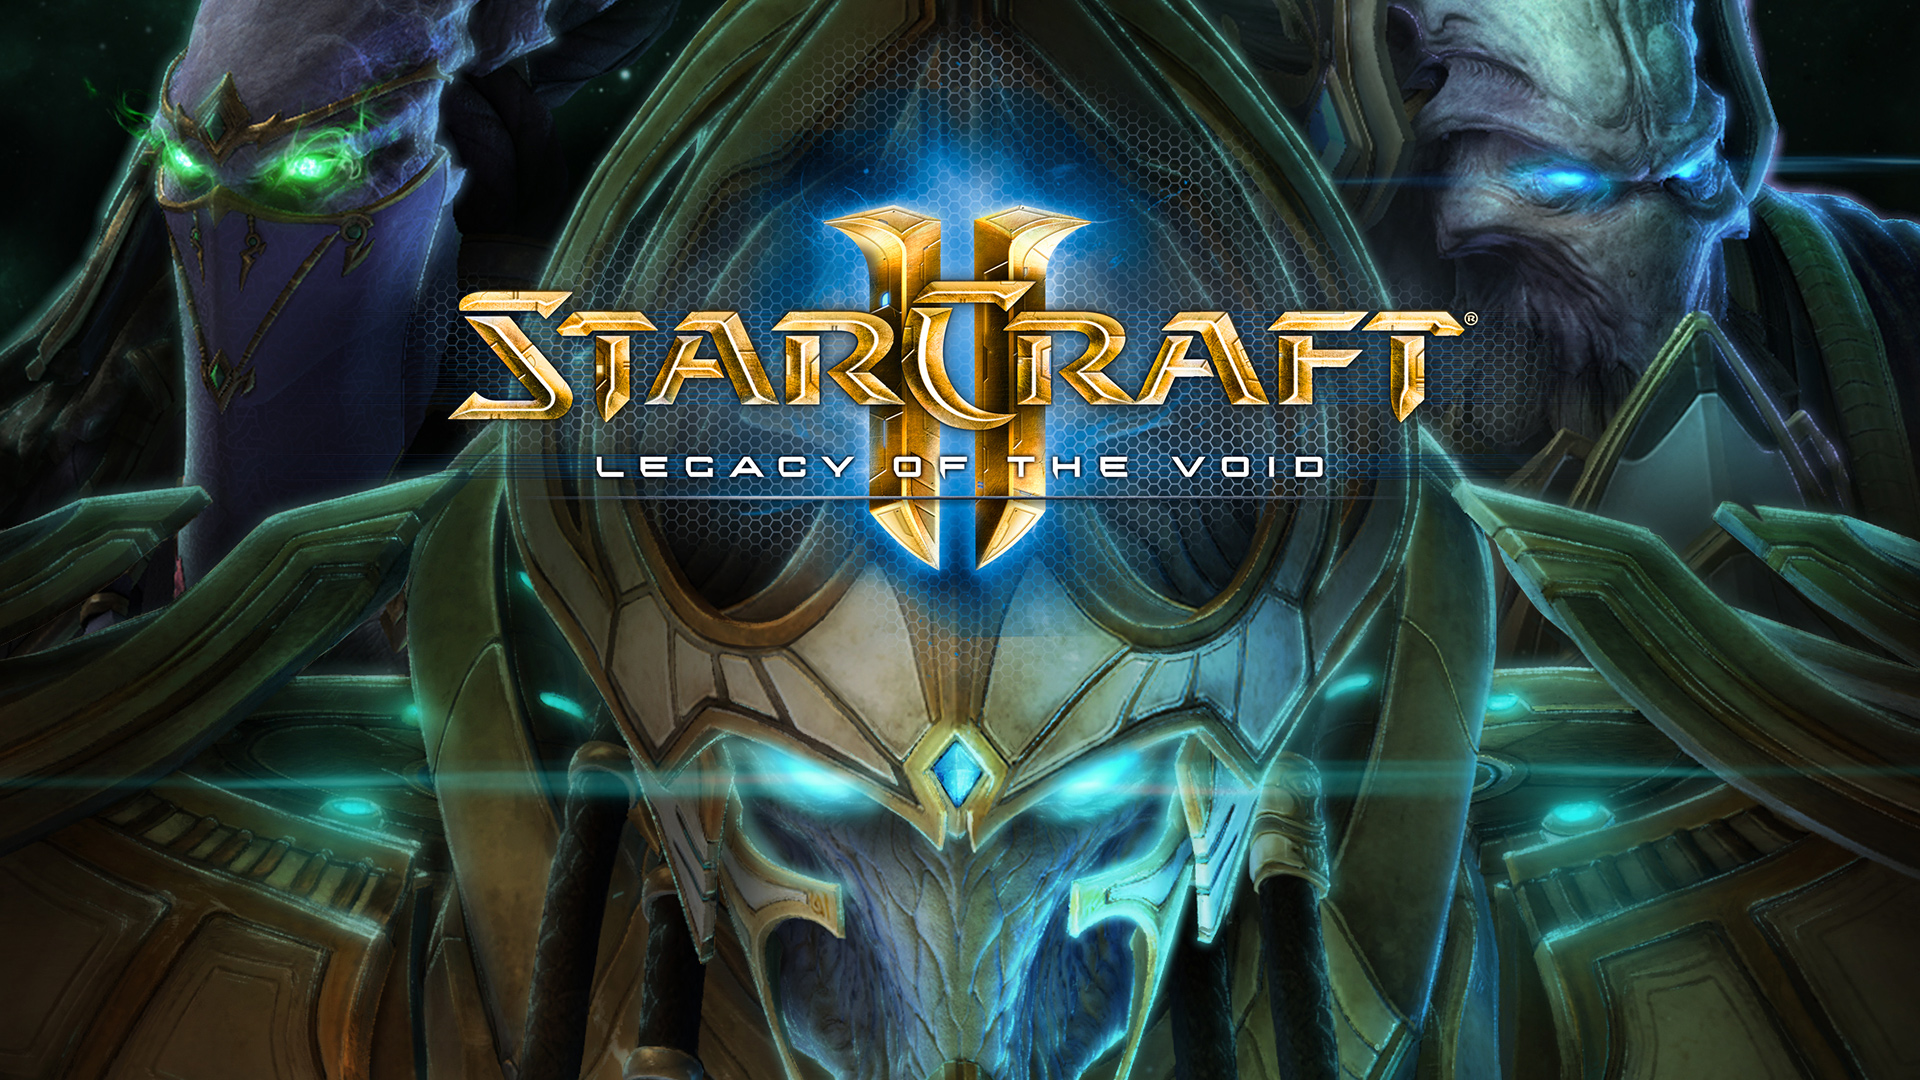 Blizzard Gamescom 2015 Starcraft II legacy of the void